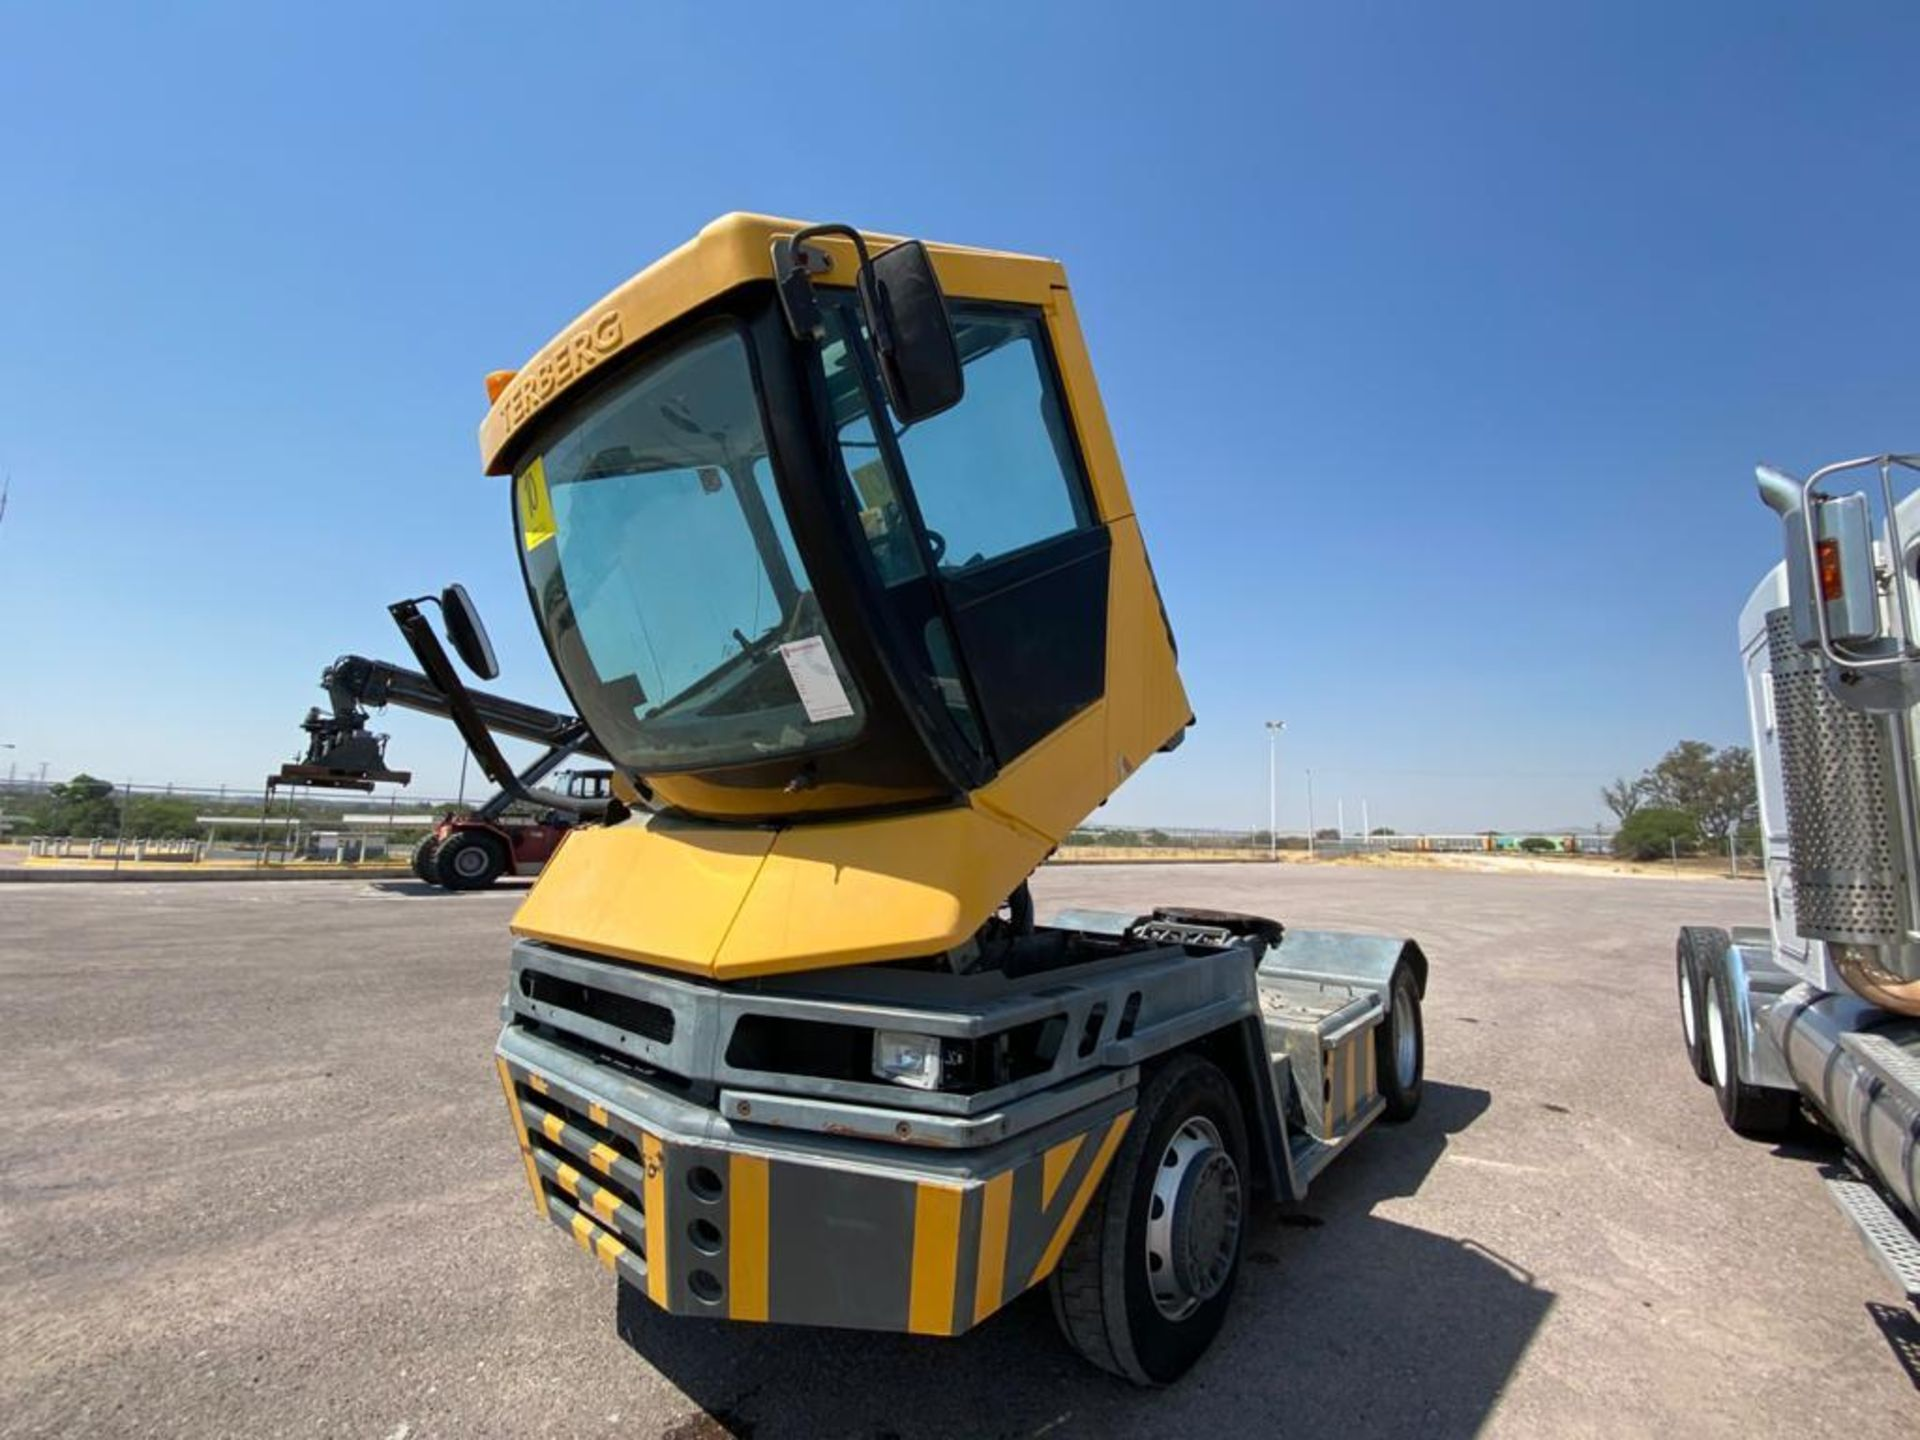 Terberg Capacity 2002 Terminal Tractor, automatic transmission, with Volvo motor - Image 9 of 28